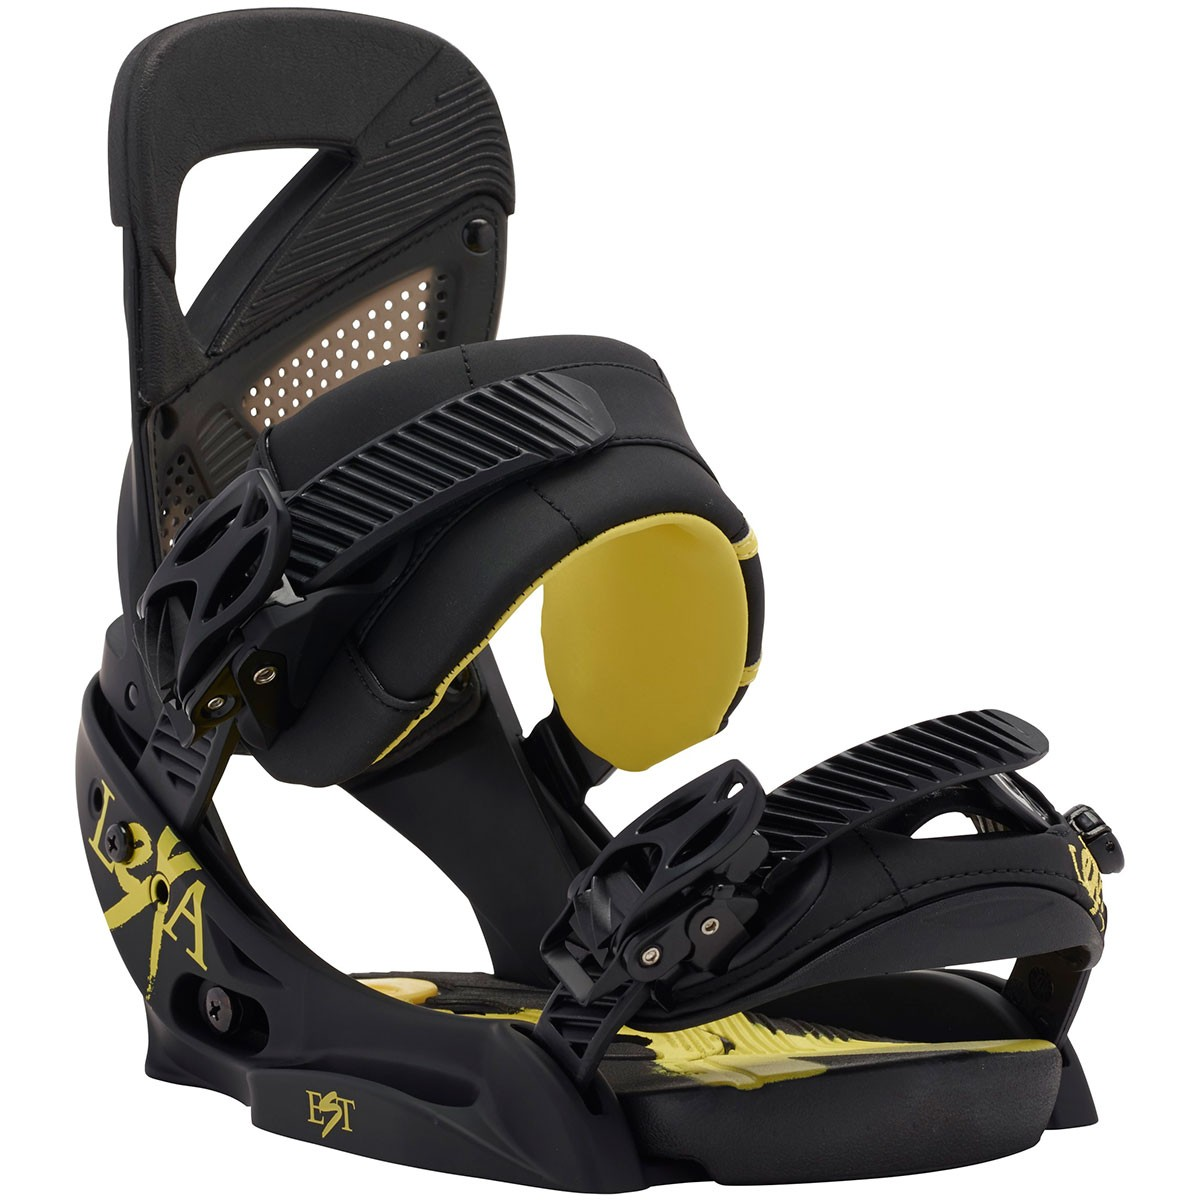 Burton Lexa Women's EST Snowboard Bindings 2015 - Black / Yellow